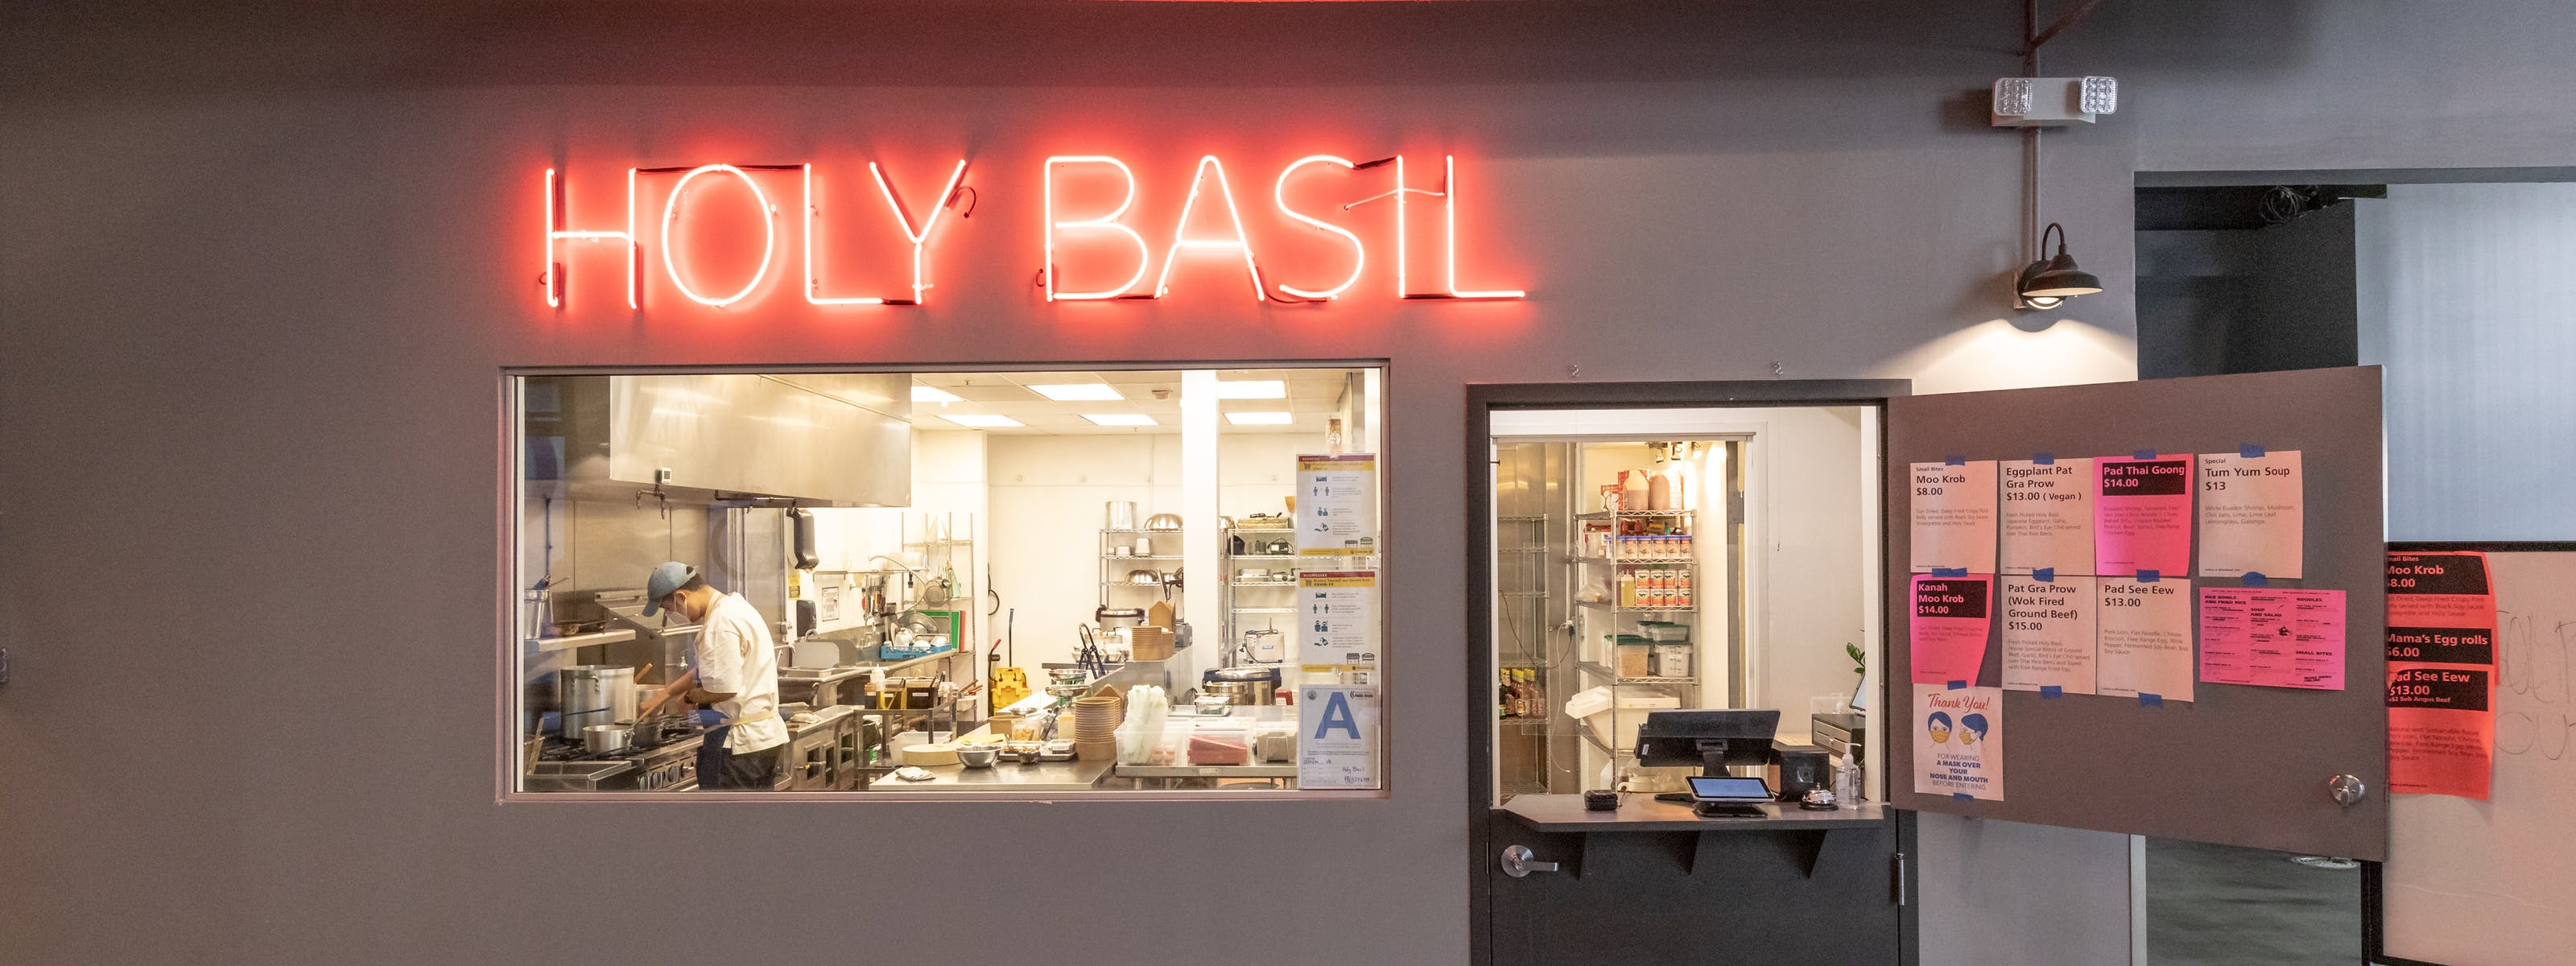 Holy Basil - Downtown LA - Los Angeles - The Infatuation